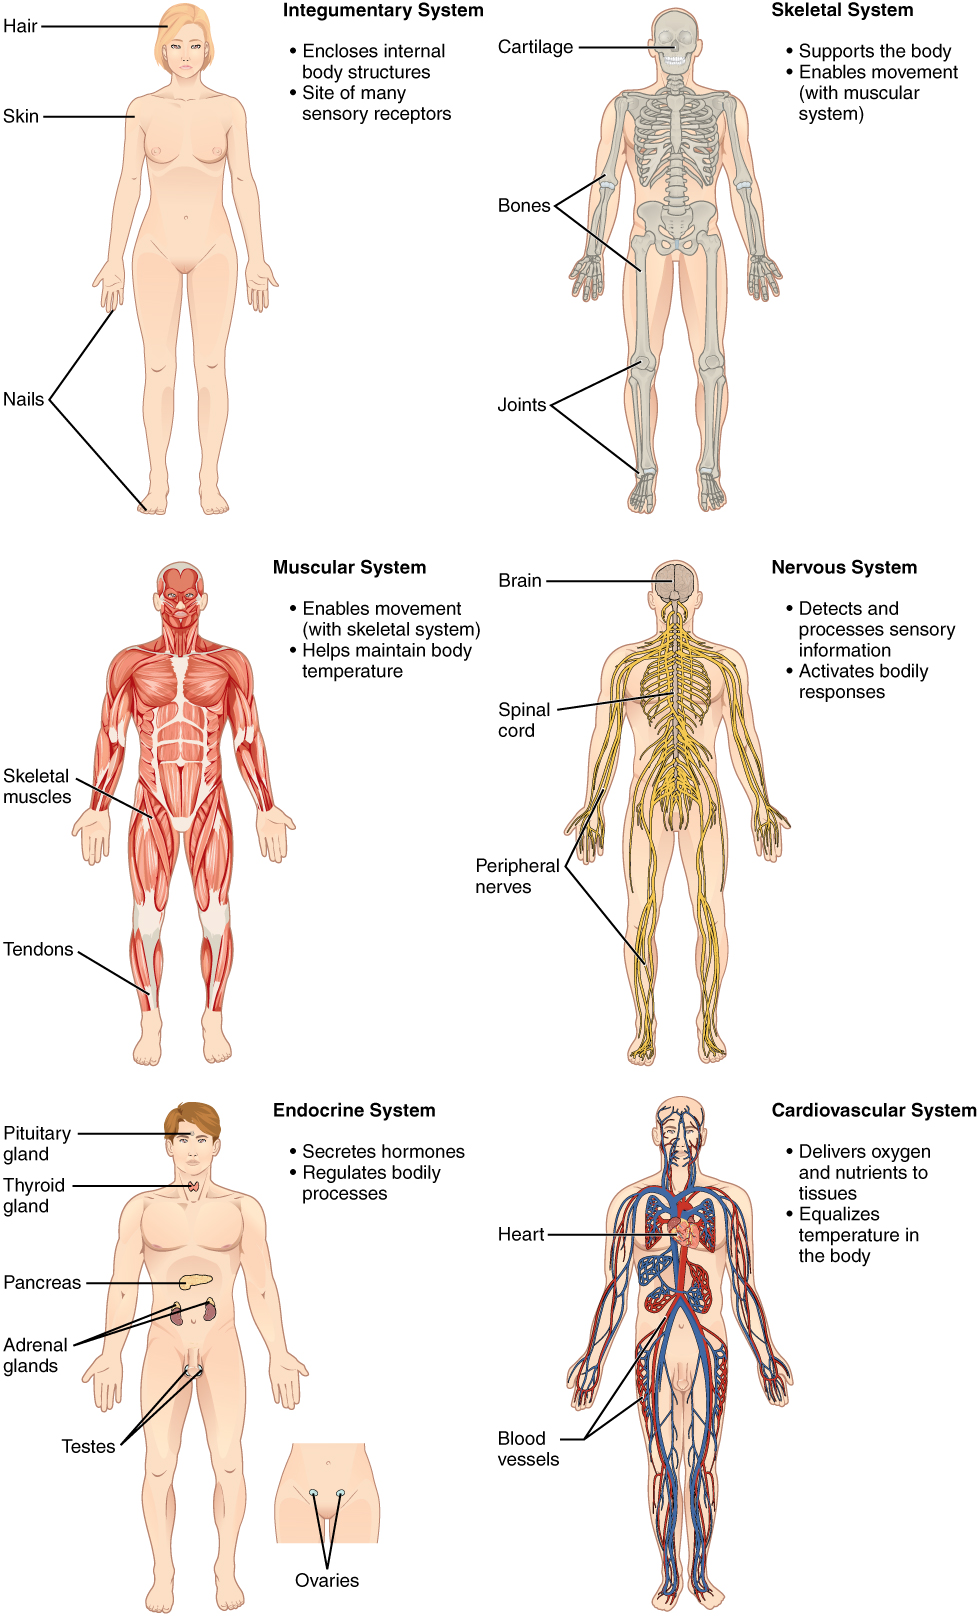 Structural Organization of the Human Body · Anatomy and Physiology